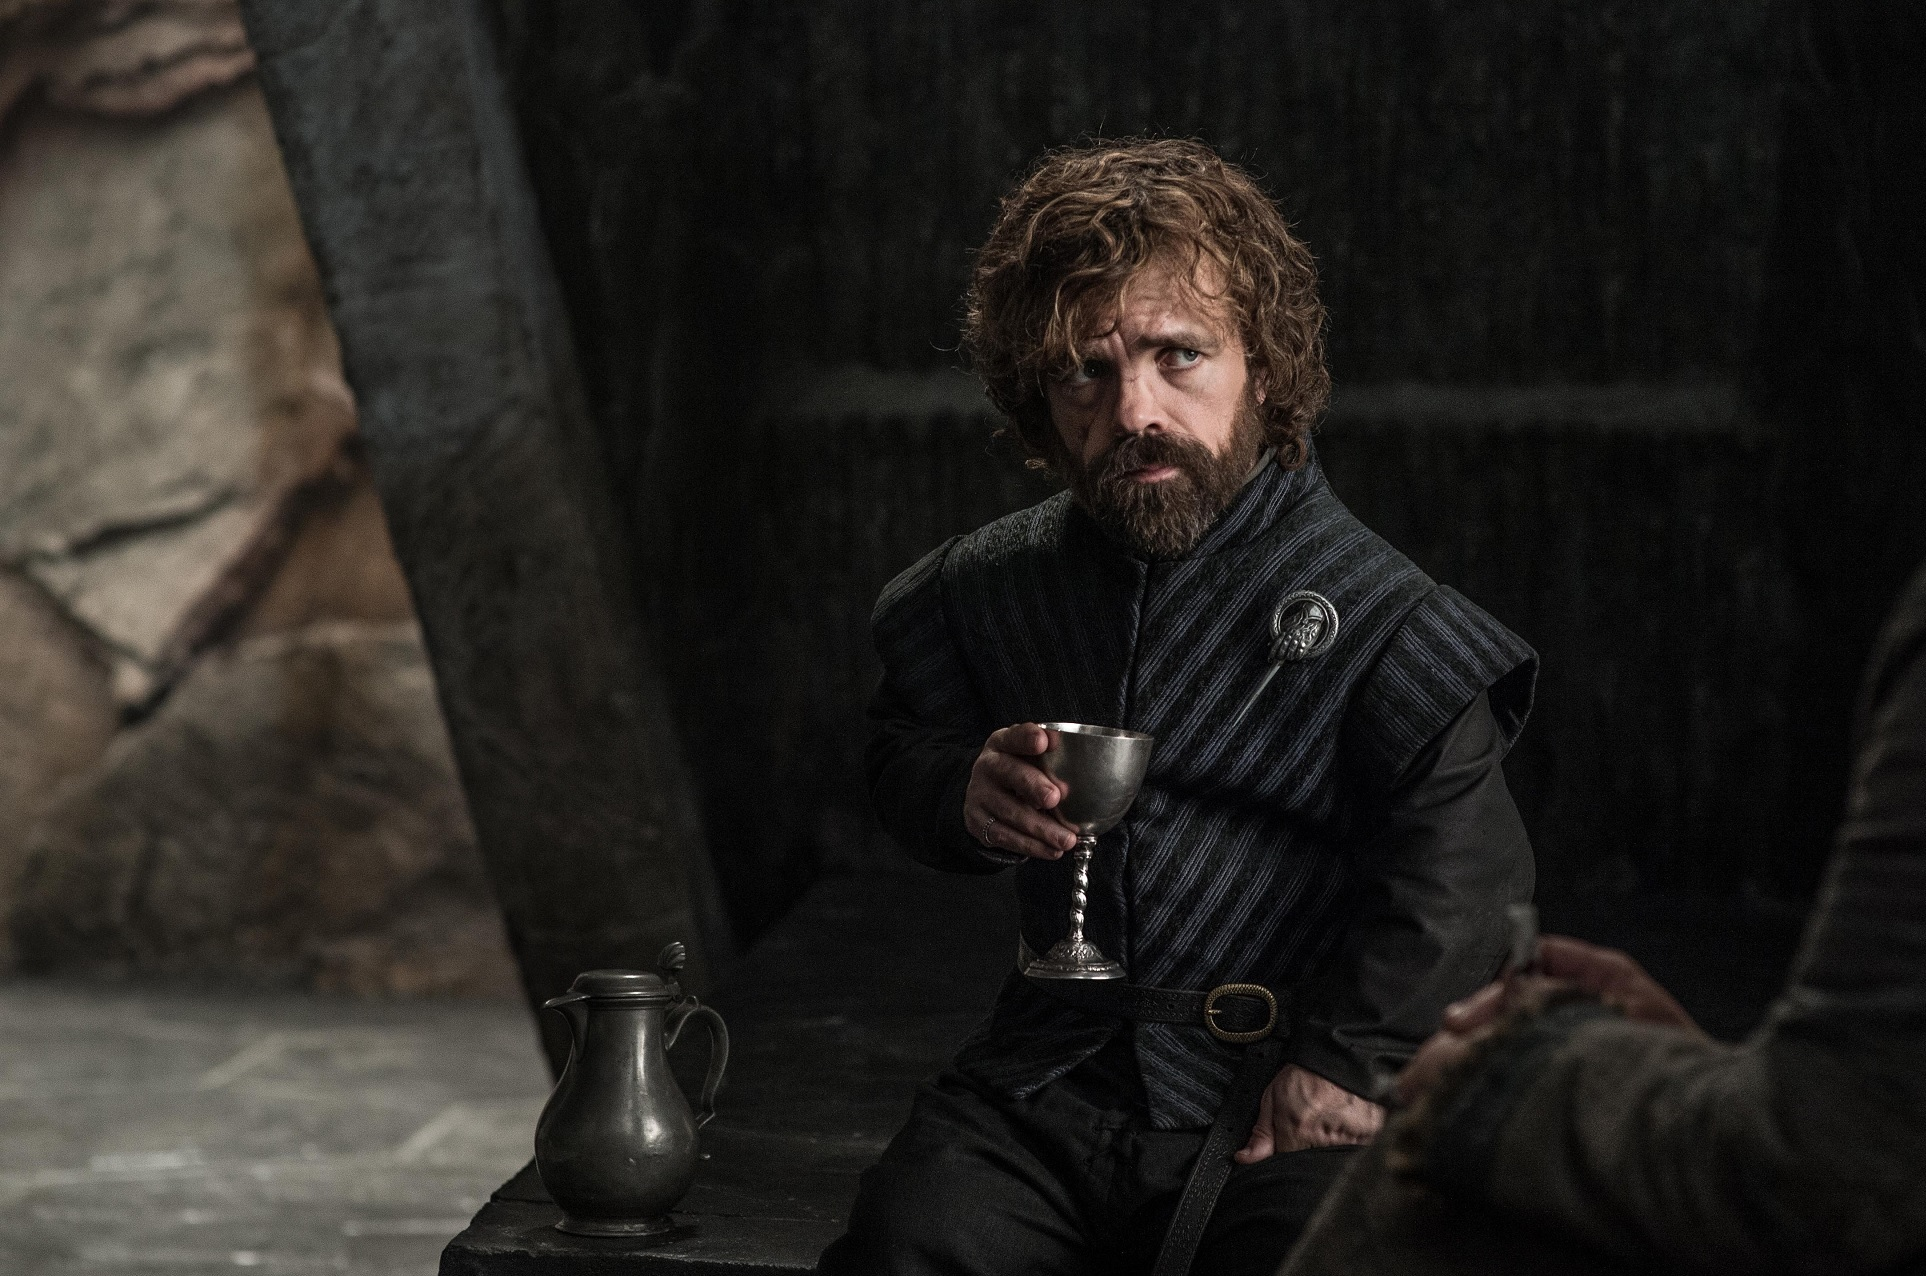 Peter Dinklage dice que es el momento preciso para terminar Game of Thrones